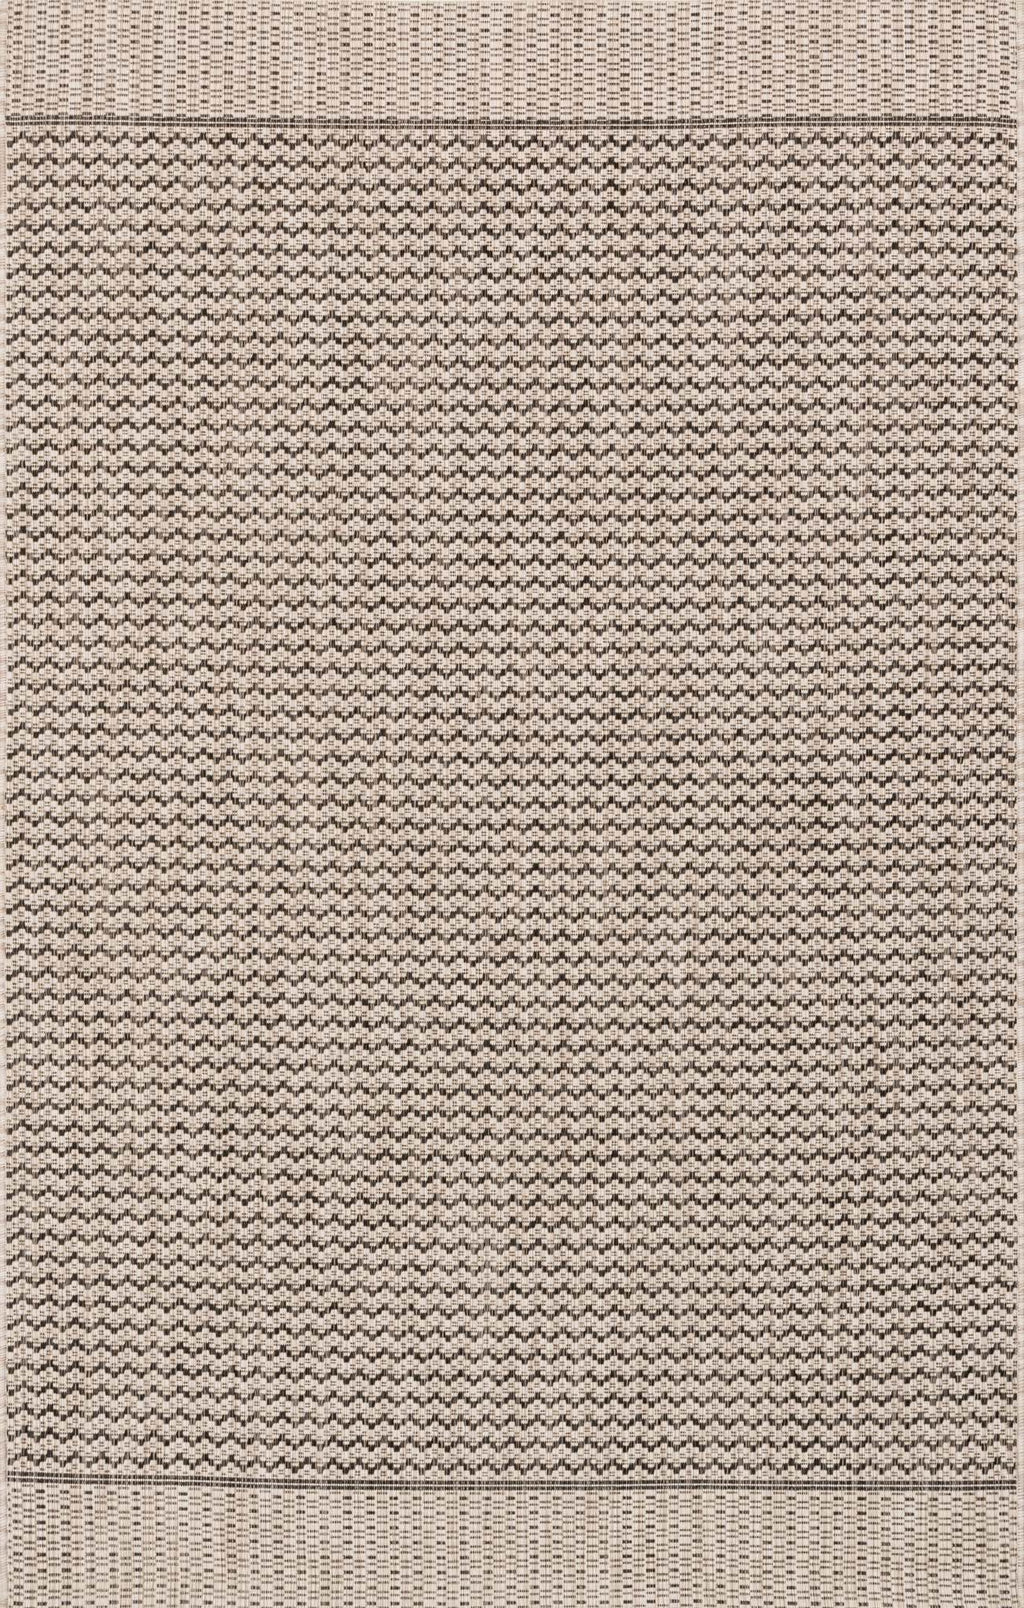 ISLE Collection Rug  in  GREY / BLACK Gray Small Power-Loomed Polypropylene